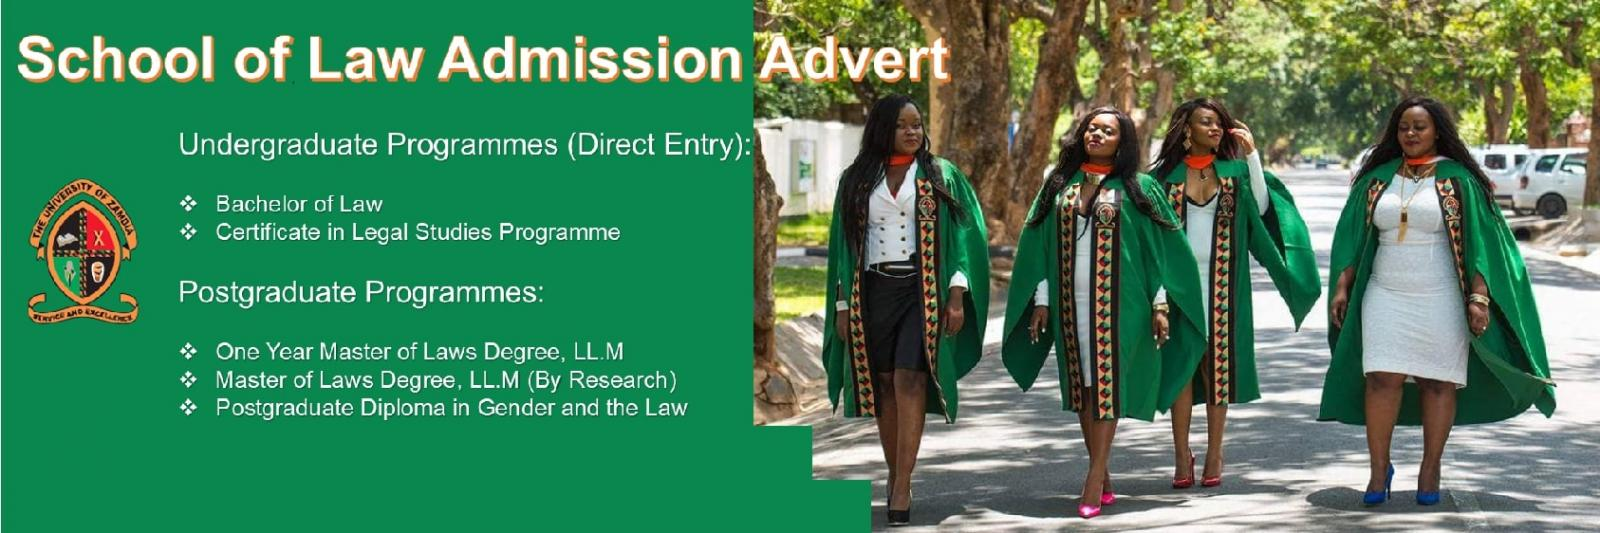 2019 Admissions Advert